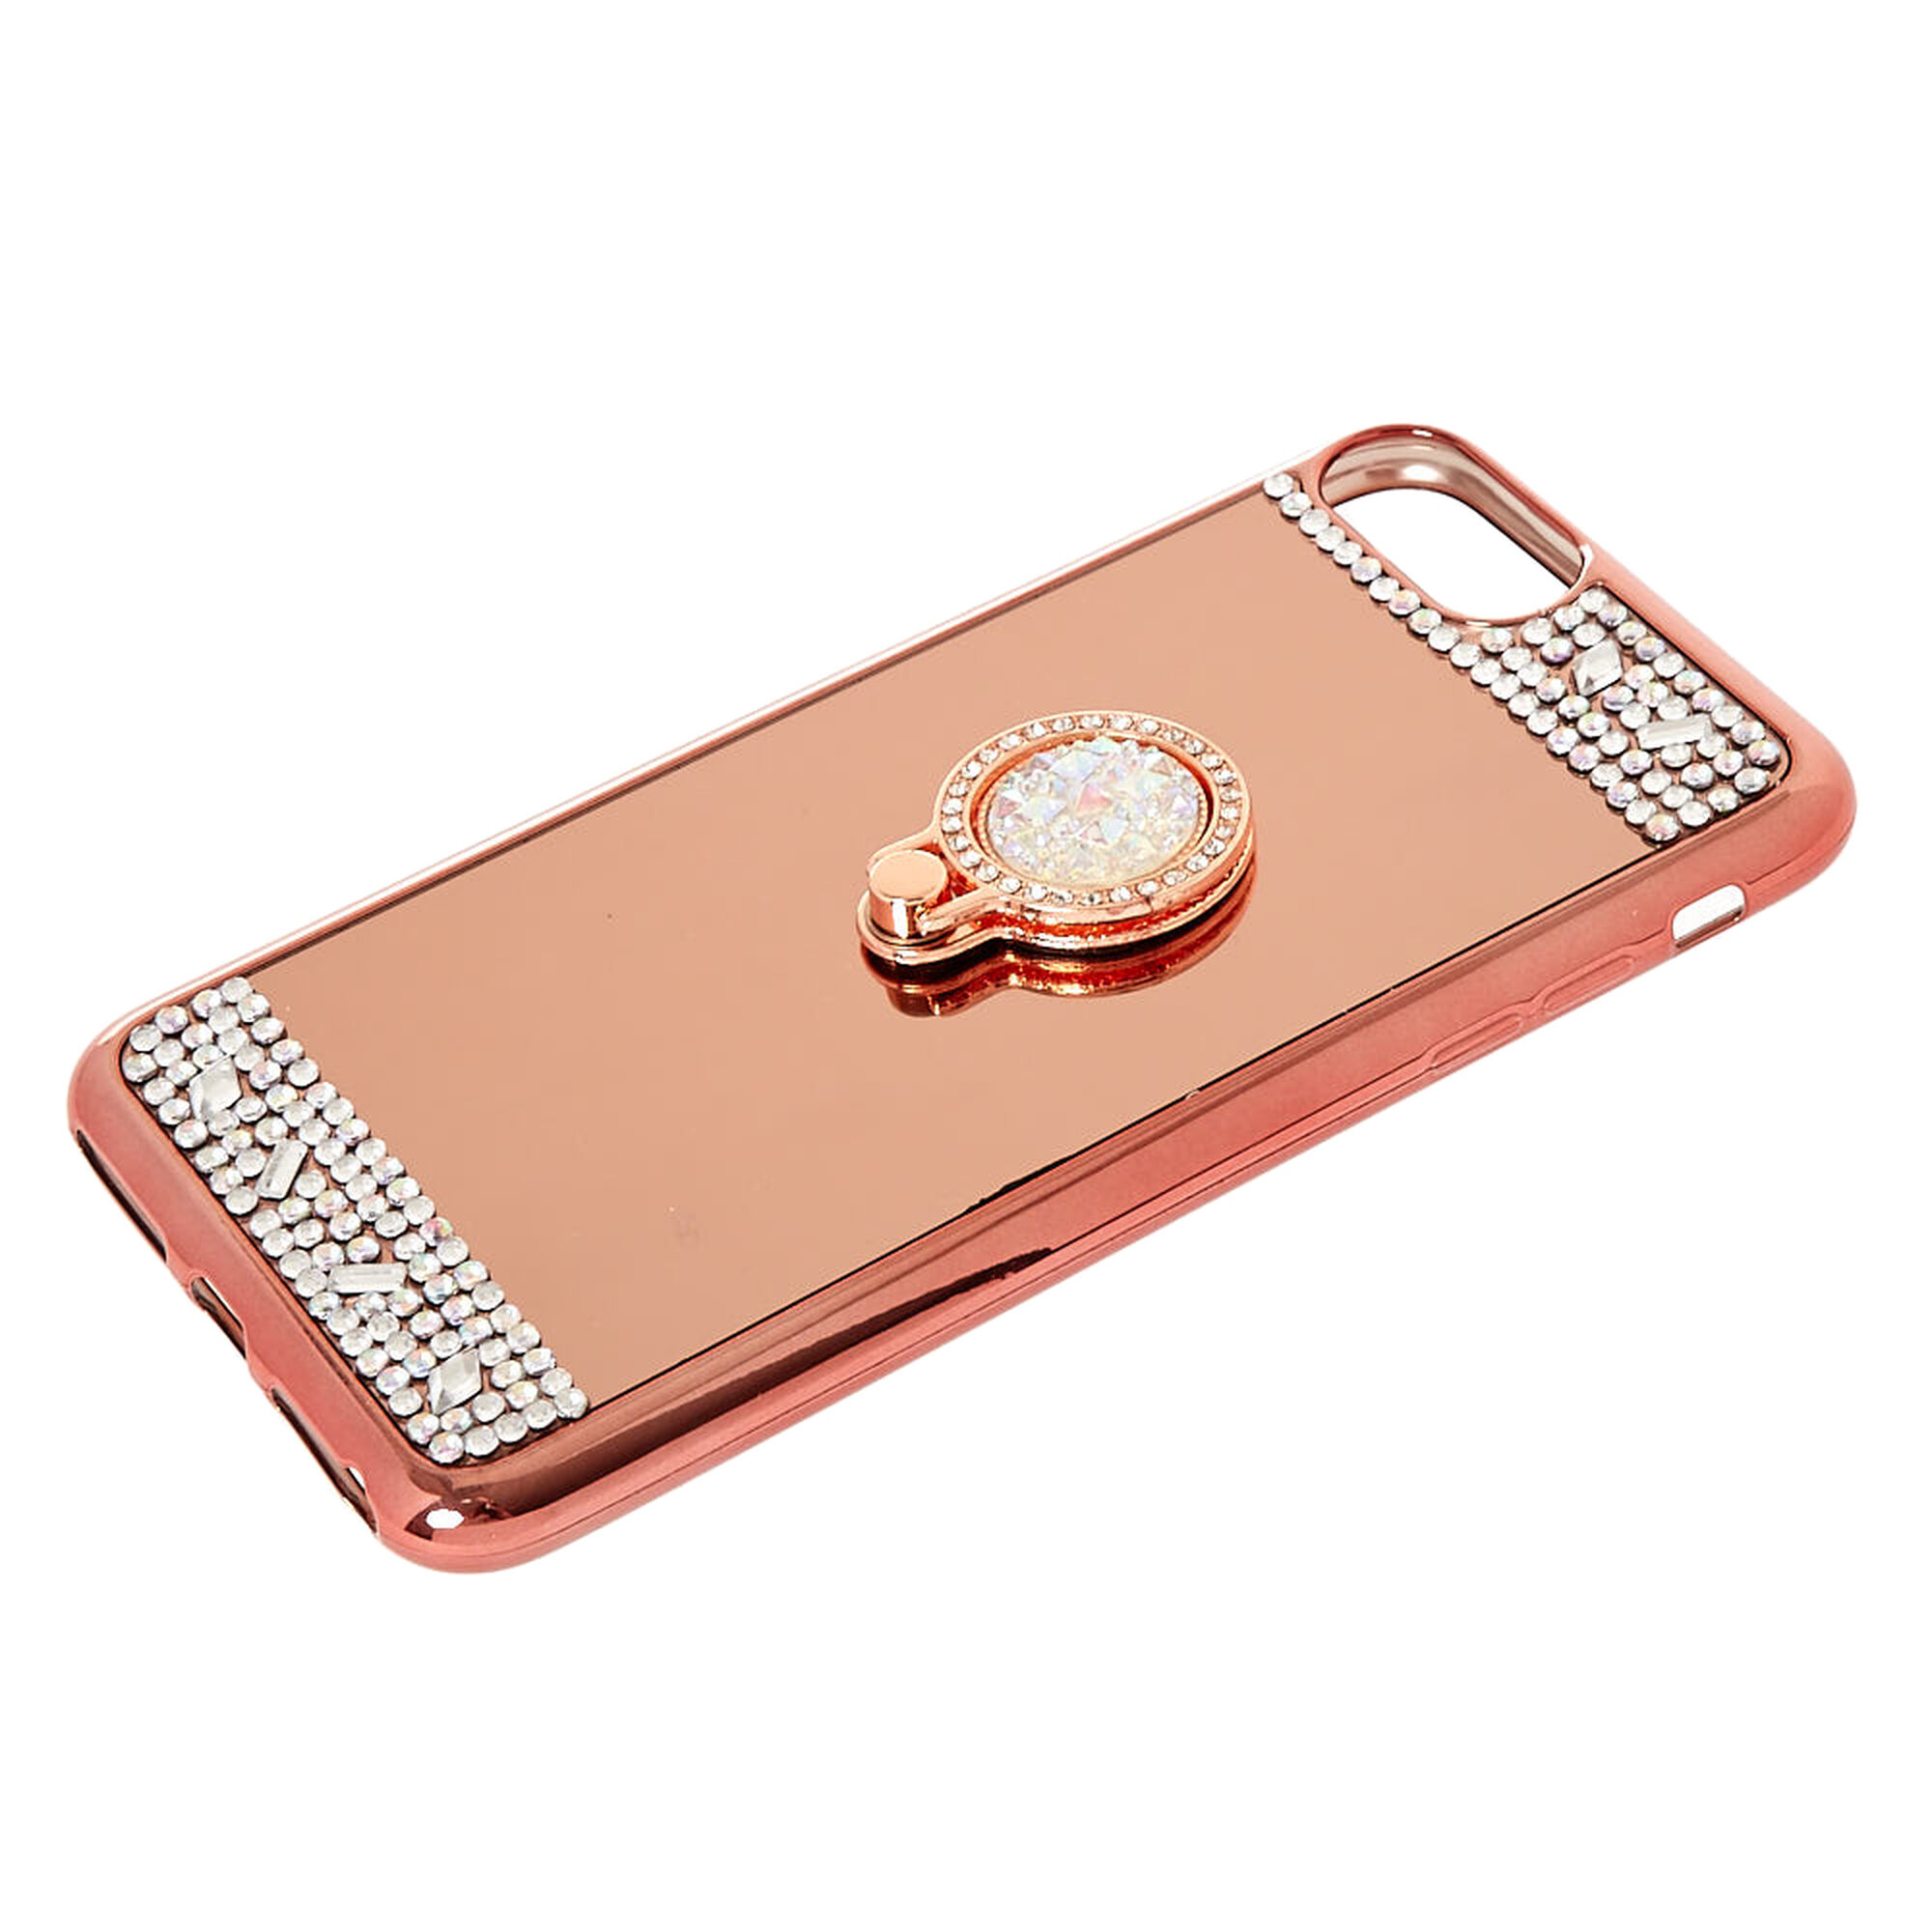 Rose gold mirrored ring stand phone case claire 39 s for Ring case